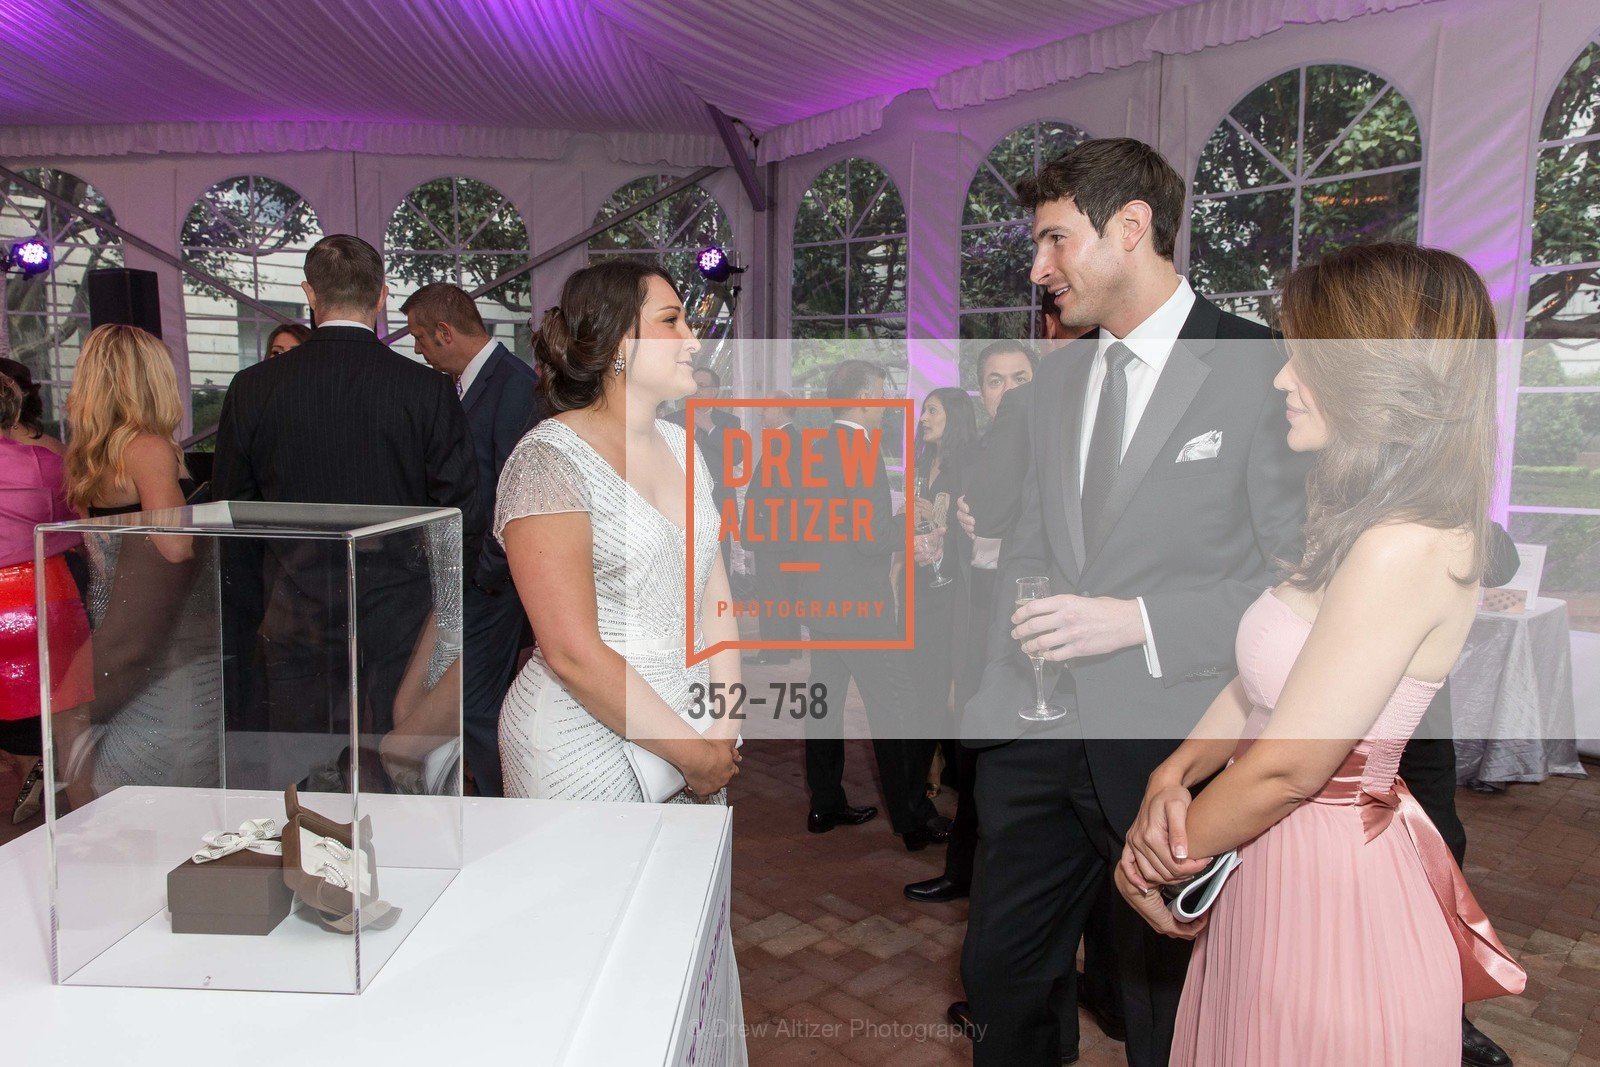 Stephanie Nelson, Sam Brock, Gabriella Dellan, JUVENILE DIABETES RESEARCH FOUNDATION  Hope Gala, US, May 30th, 2015,Drew Altizer, Drew Altizer Photography, full-service agency, private events, San Francisco photographer, photographer california